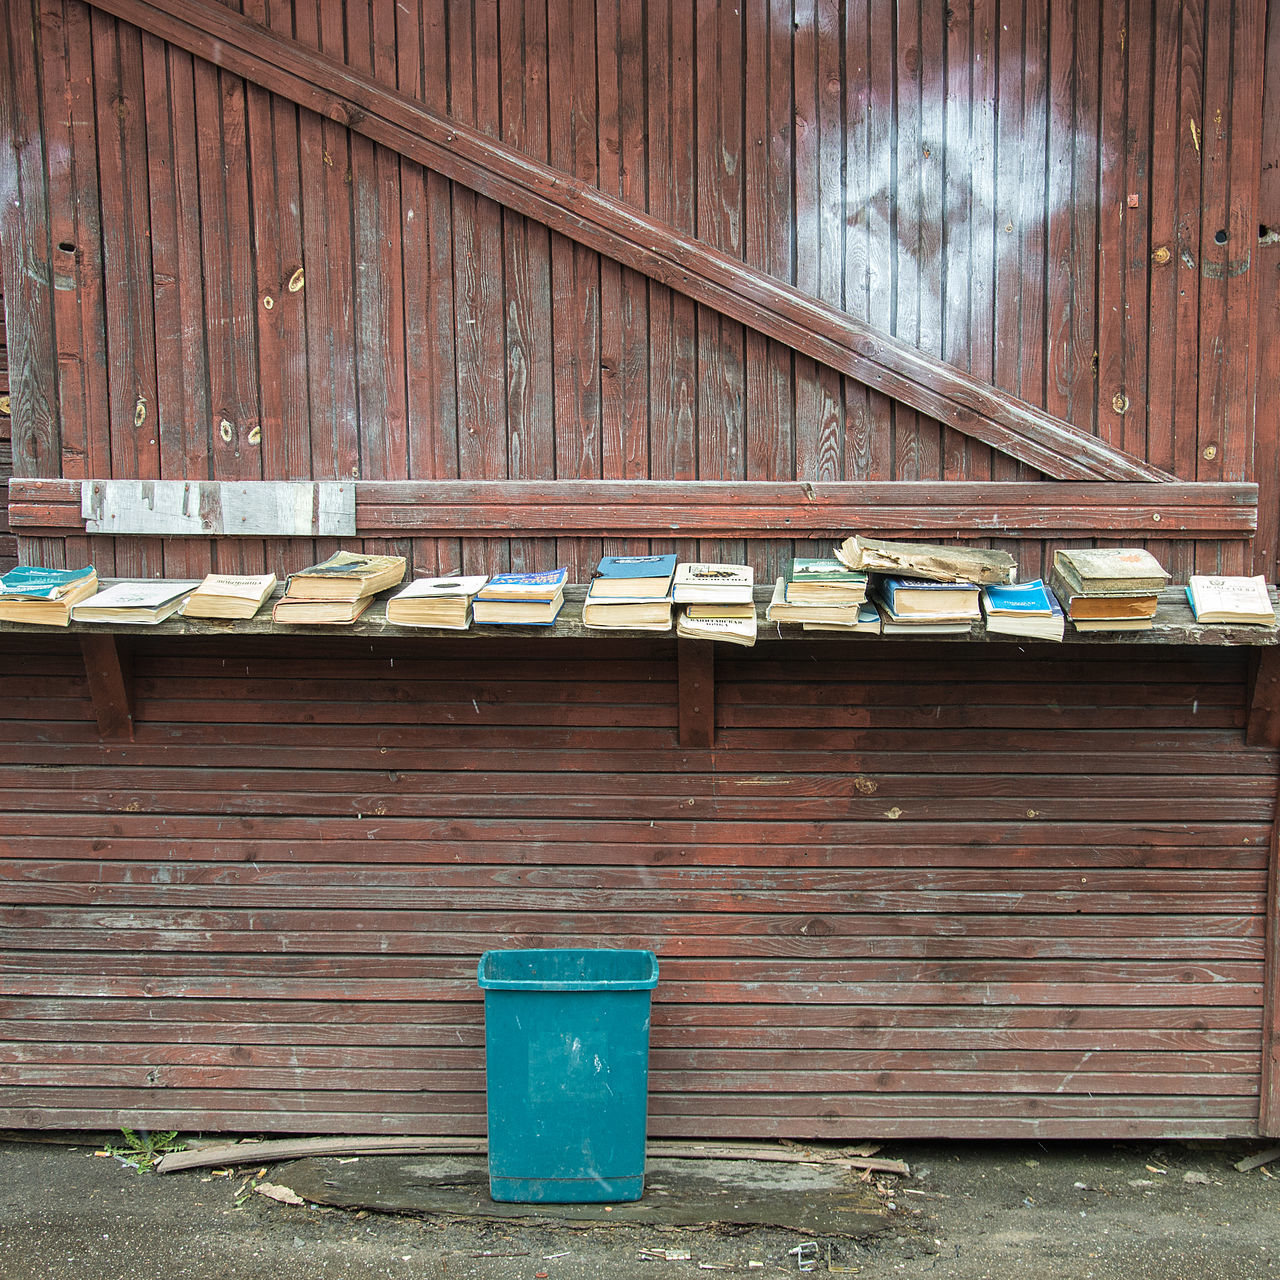 Architecture Books Bookshelf Building Exterior Built Structure Corrugated Iron Day Flea Market No People Outdoors Rustic Sale Shelf Vintage Wood - Material EyeEmNewHere Nikon Art Is Everywhere BYOPaper! The Street Photographer - 2017 EyeEm Awards